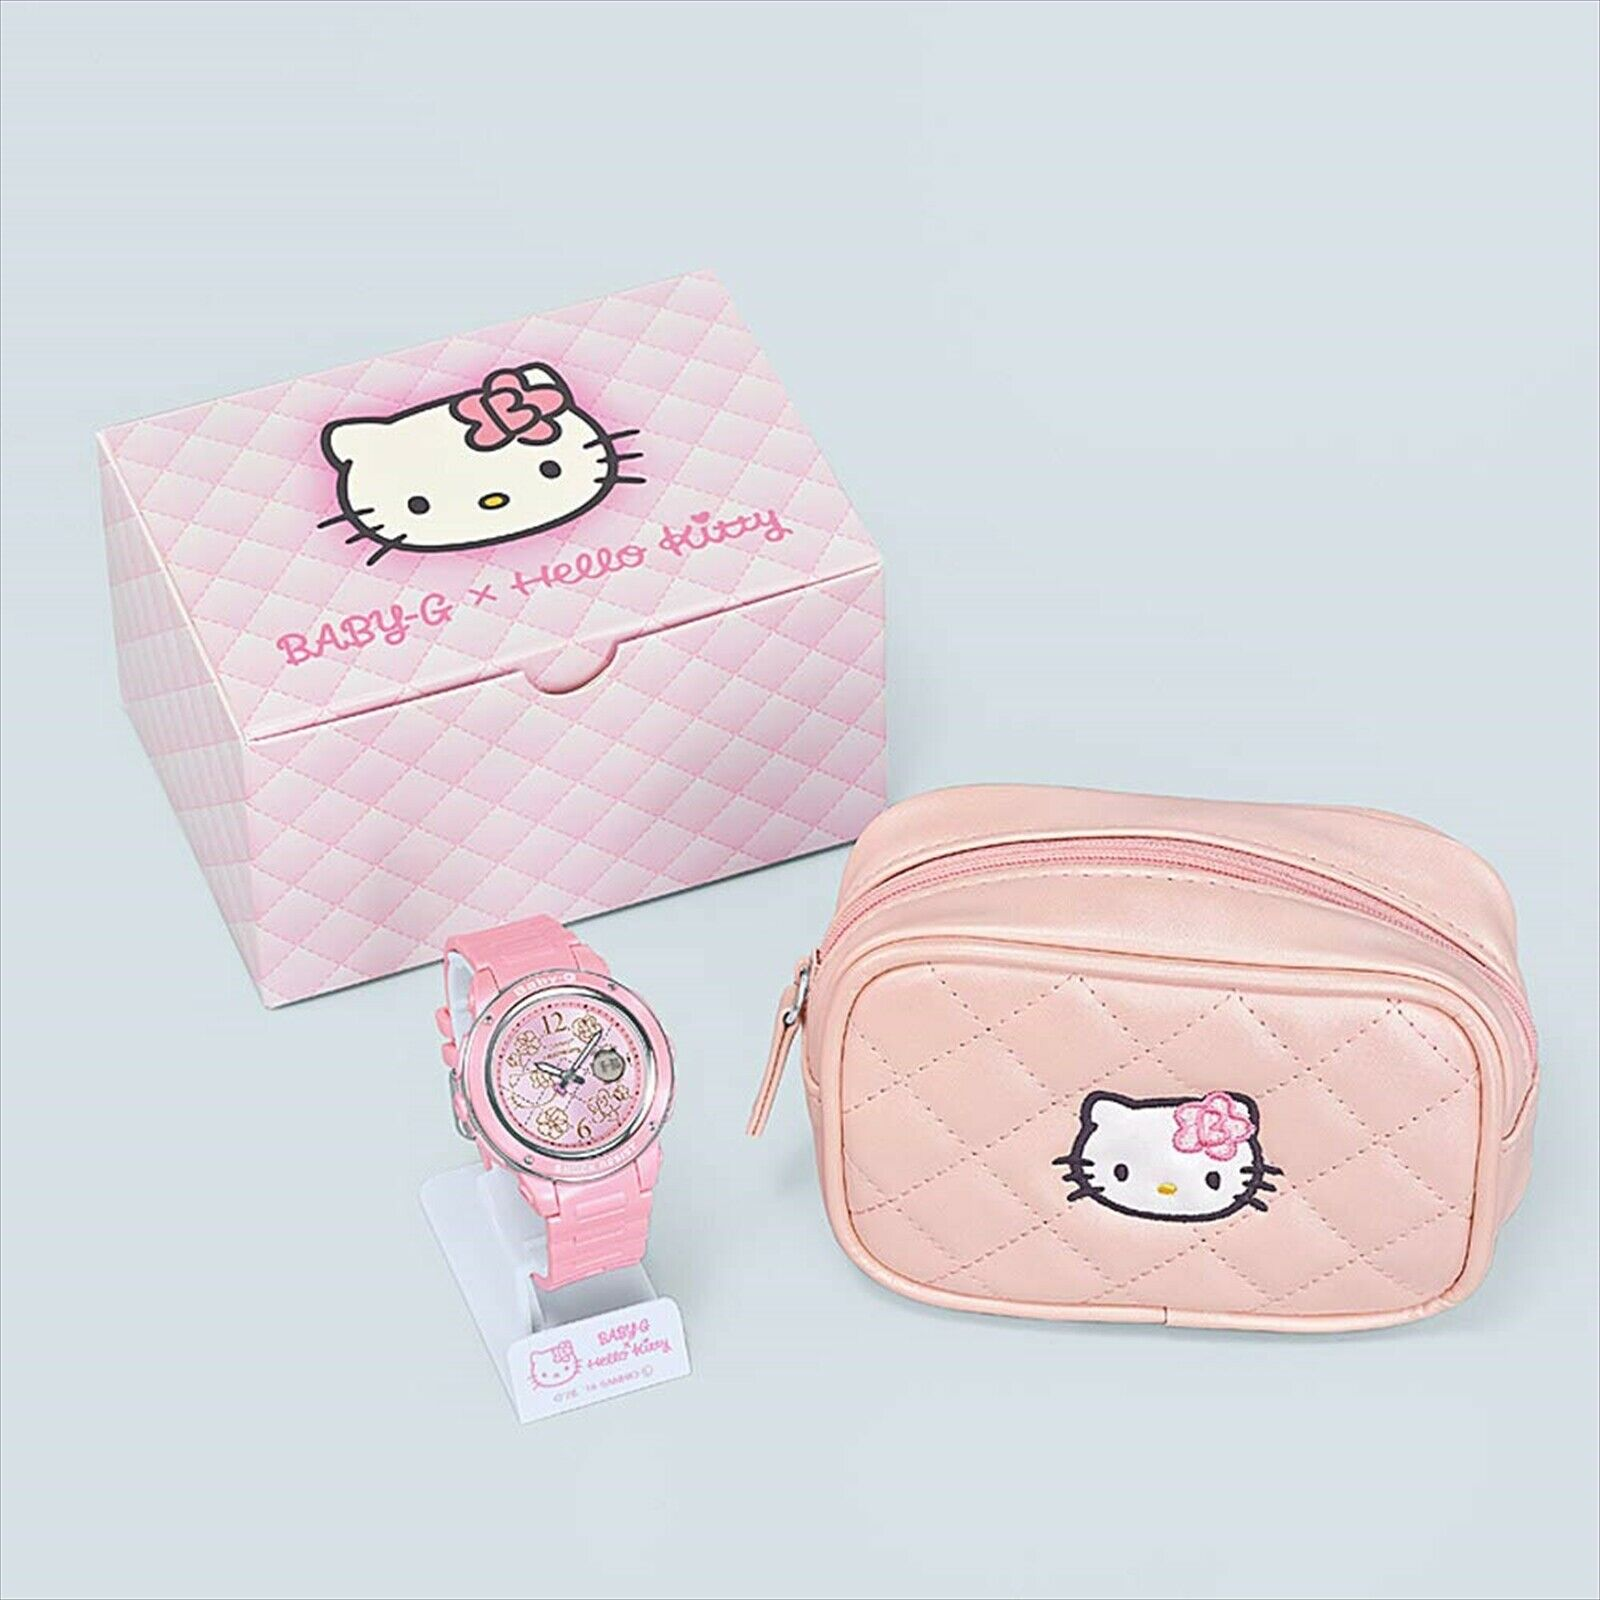 Hello Kitty x Baby-G watch package